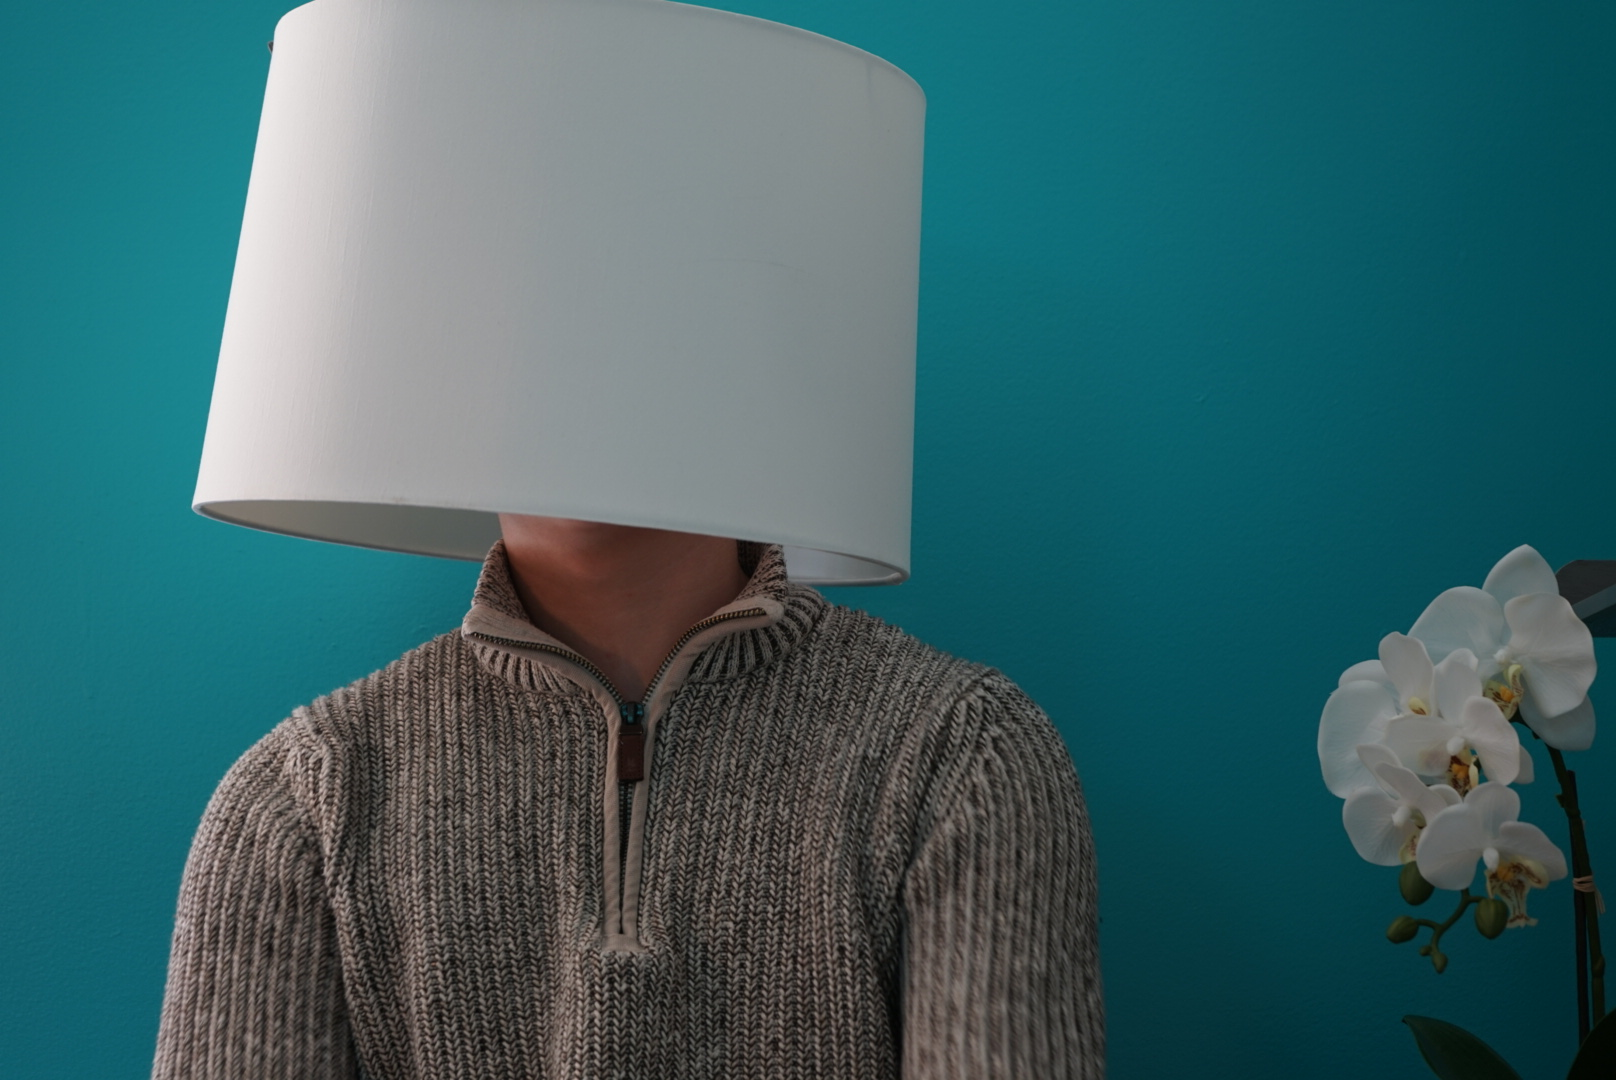 Person wearing a sweater with a lampshade over their head. Photo taken and provided by Nathan DeJesus.